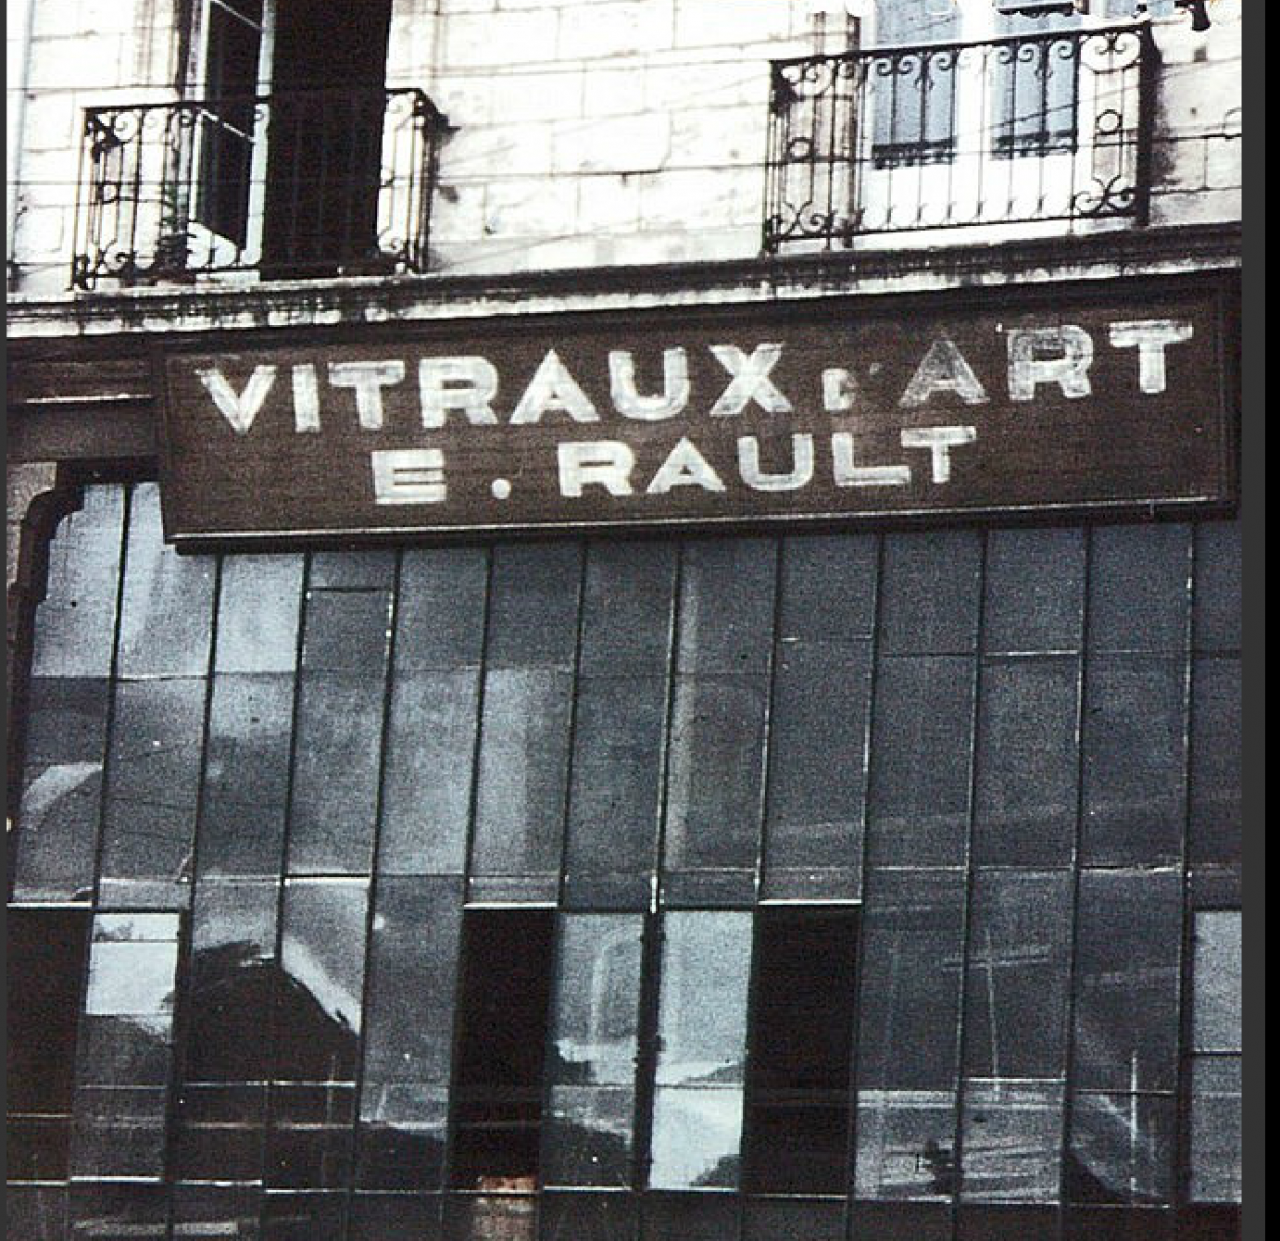 The large atelier building constructed for Vitraux D'Art E. Rault, c. 1952